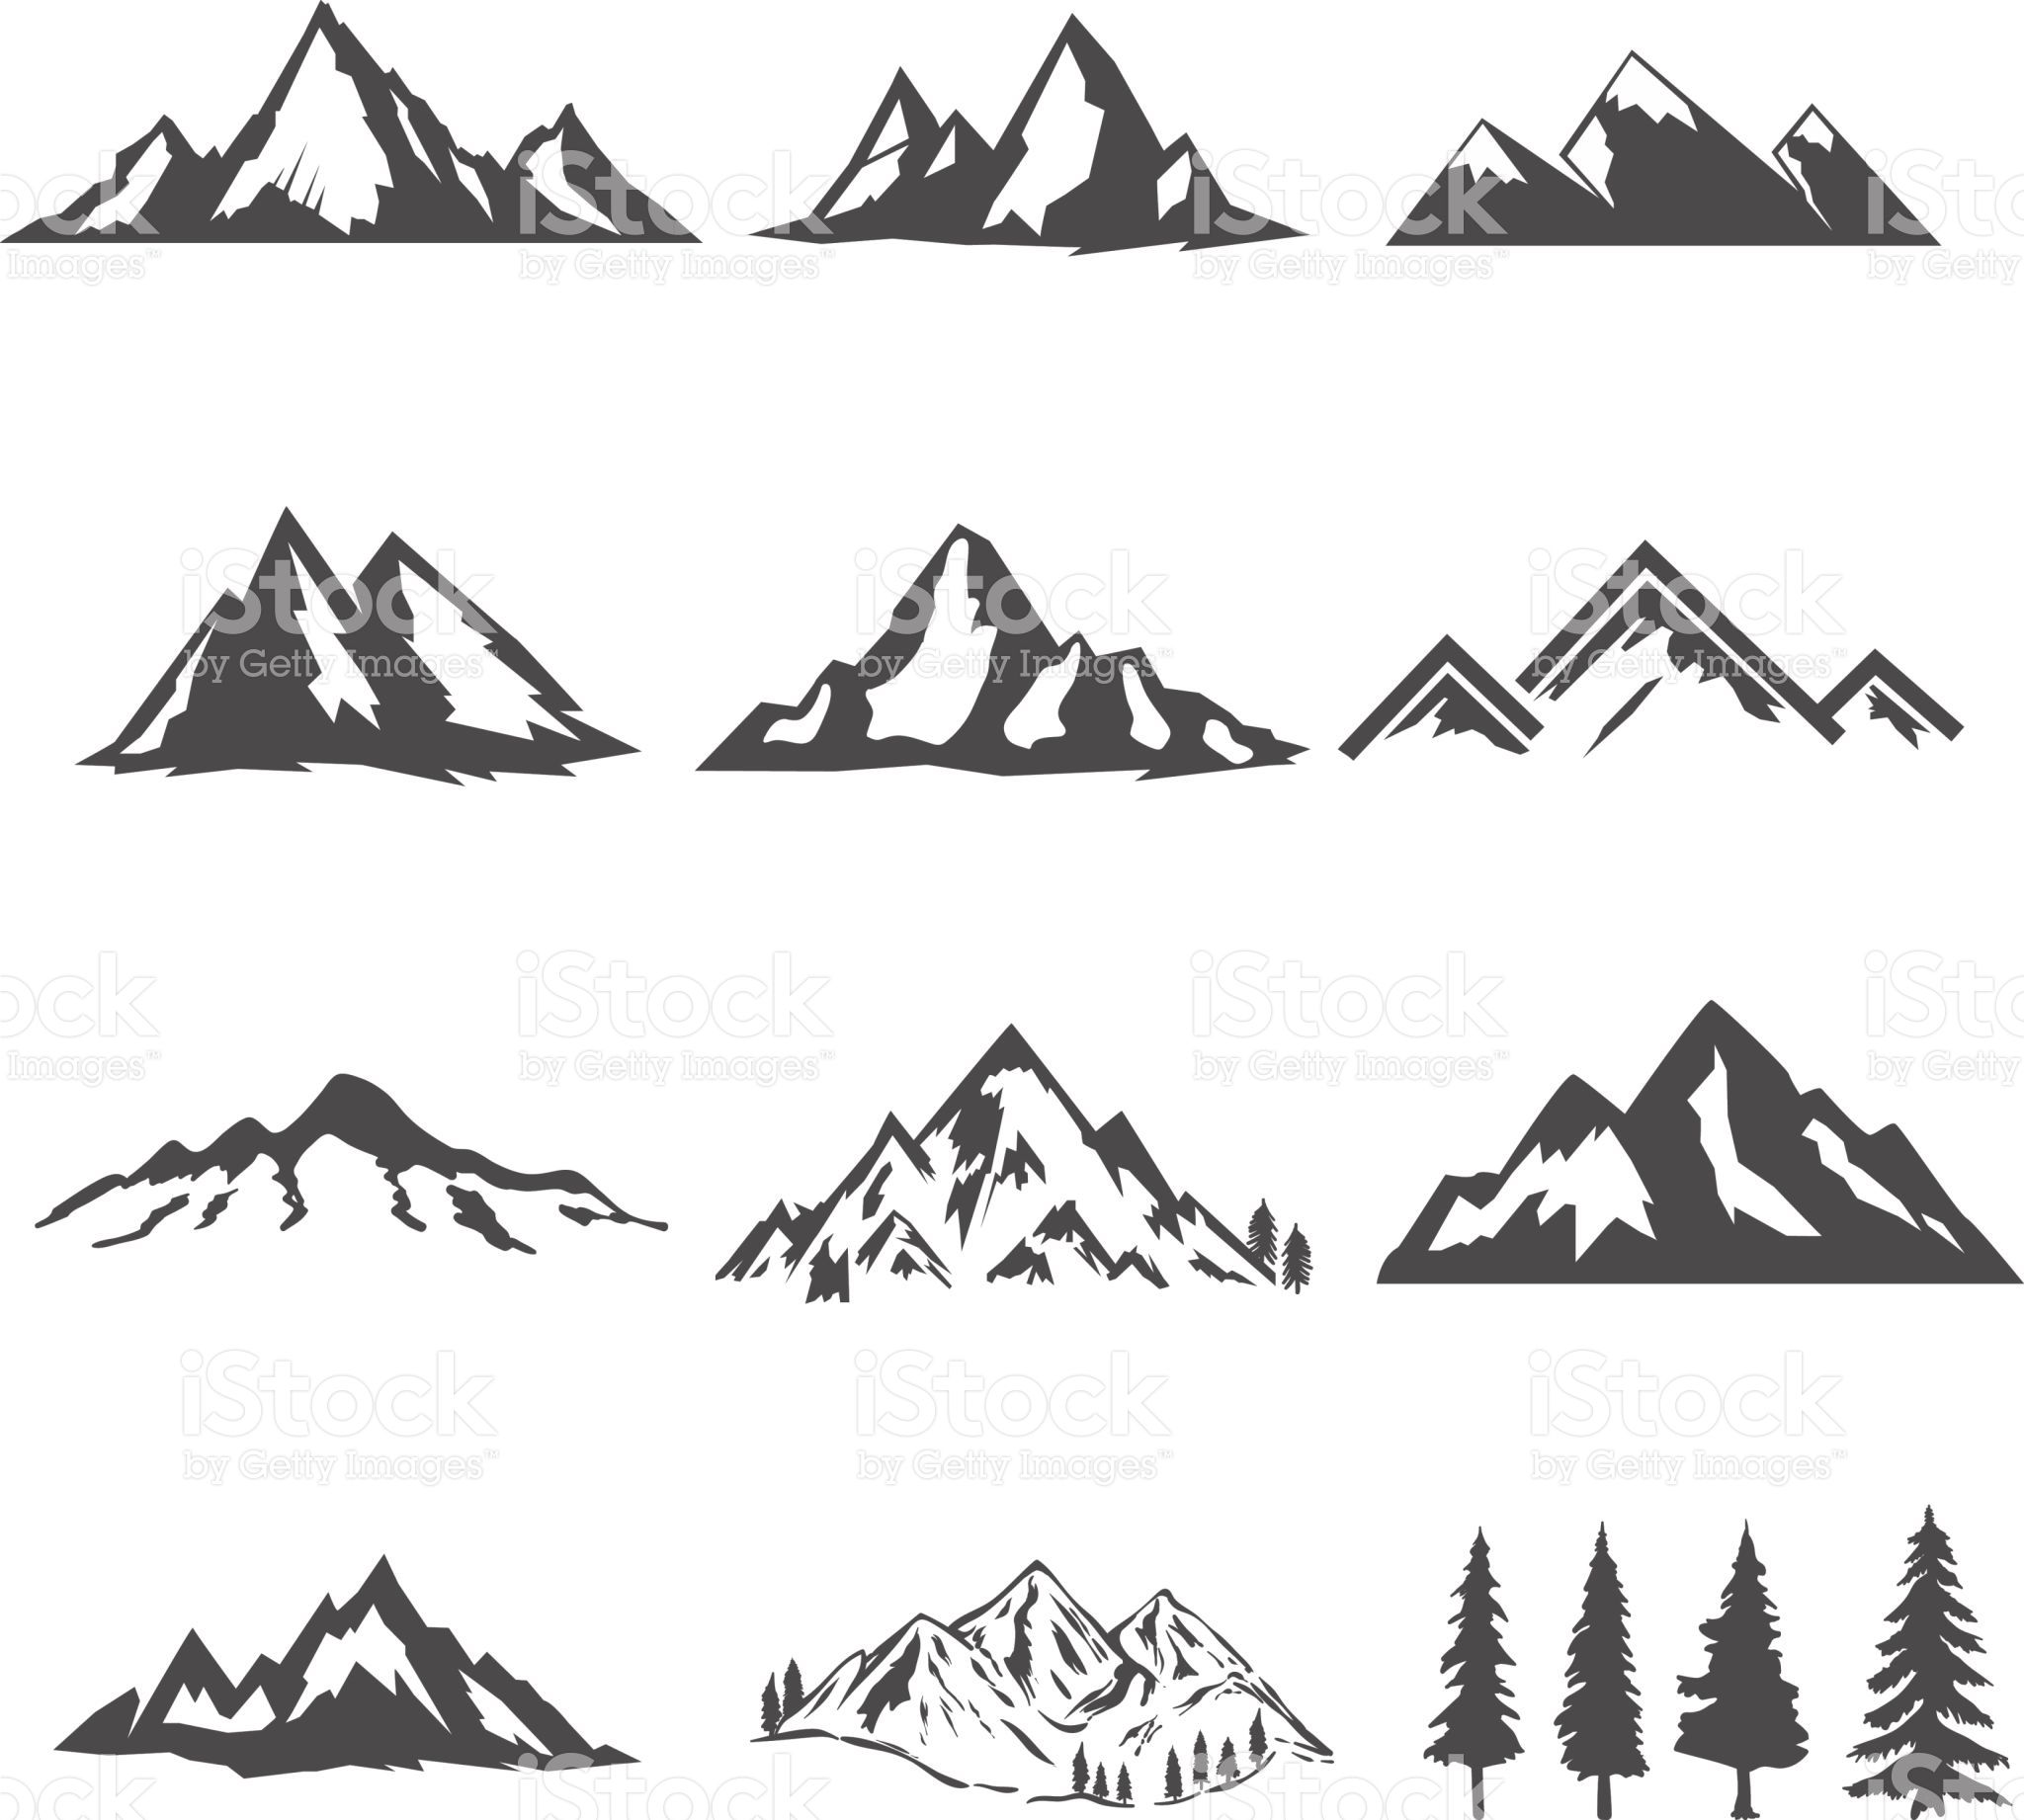 set of the mountains illustrations isolated on white